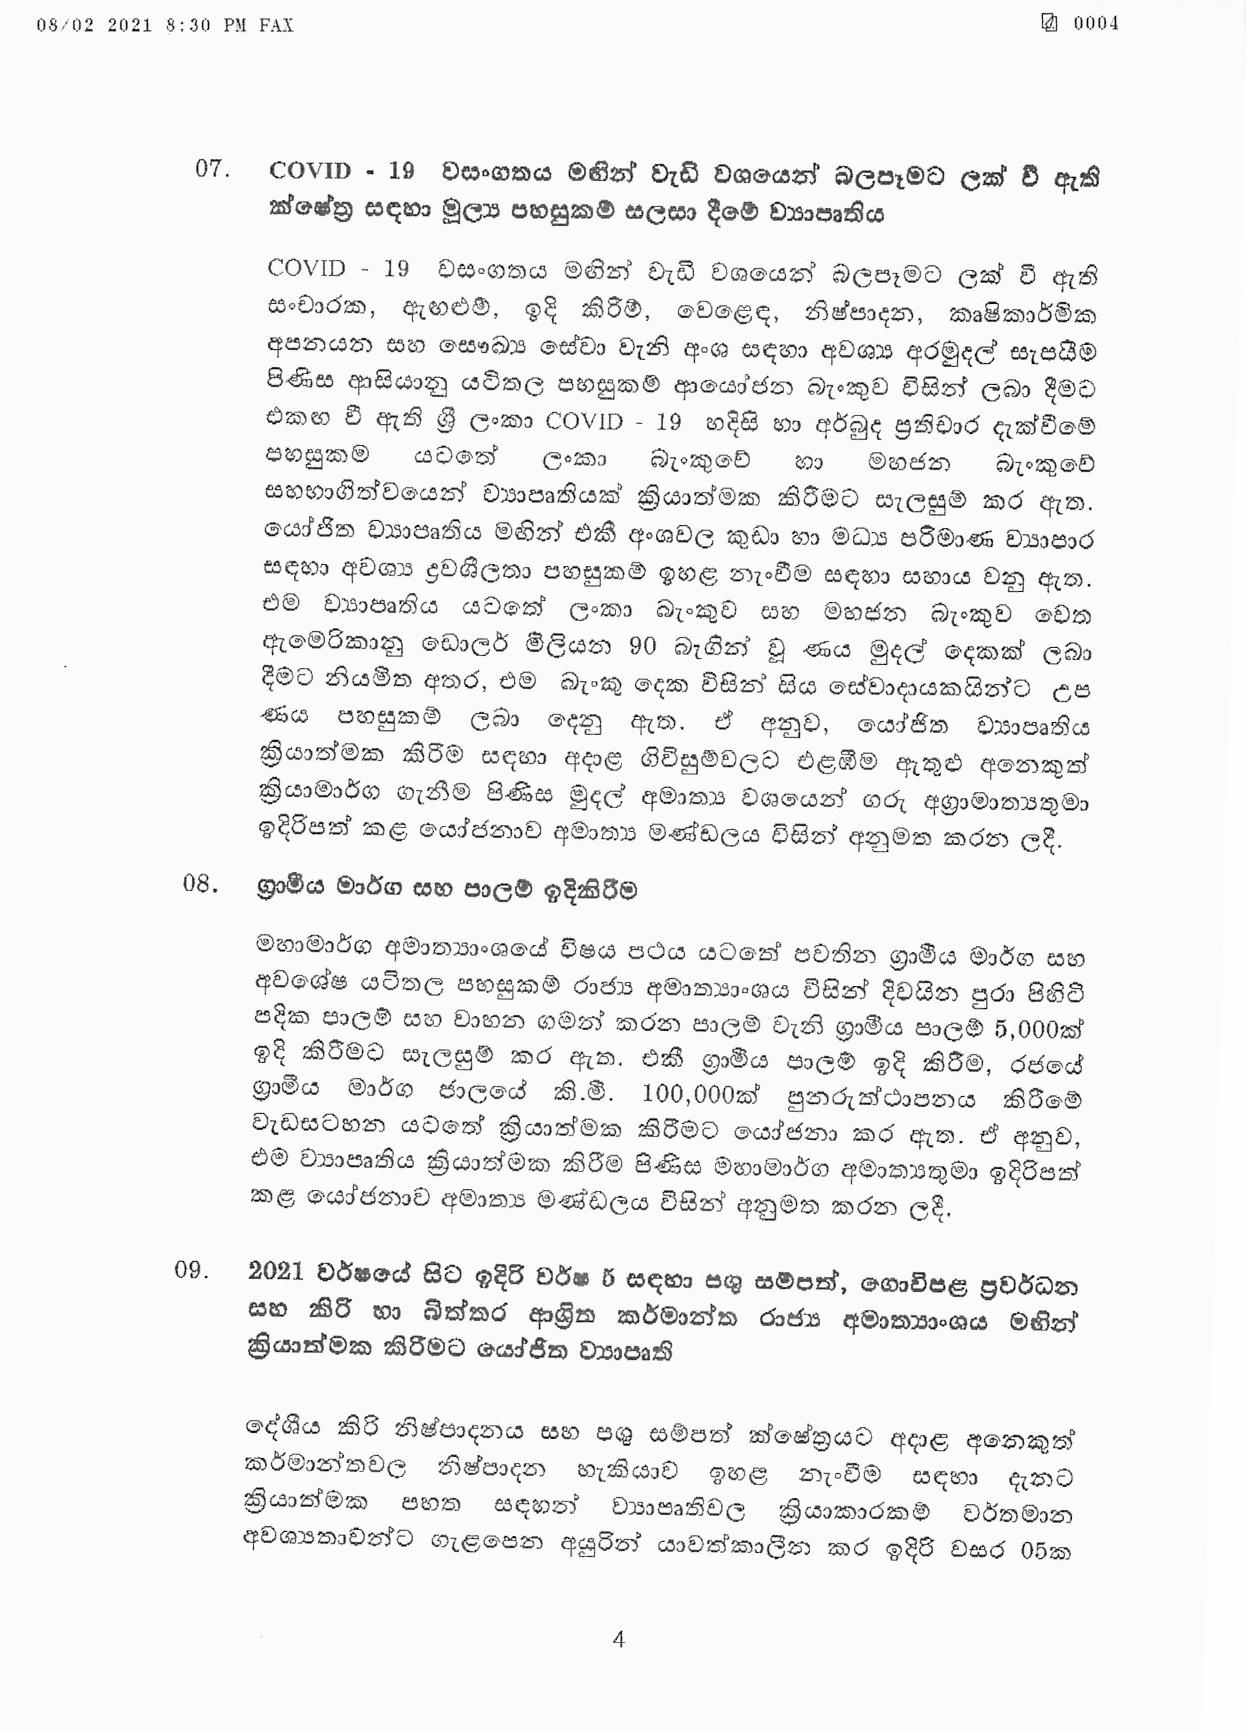 Cabinet Decision on 08.02.2021 page 004